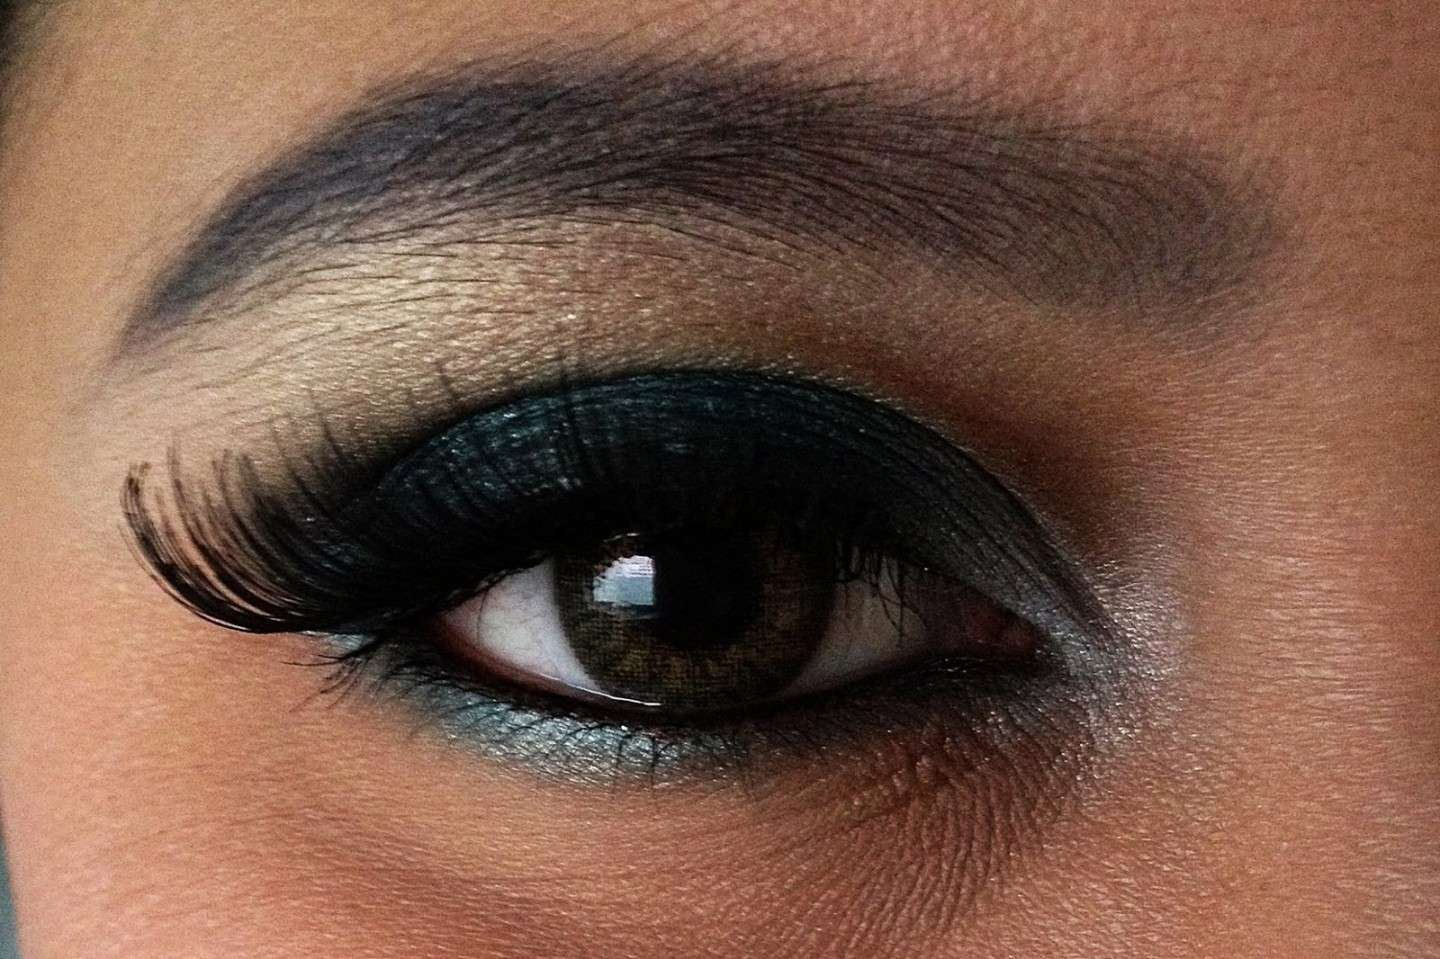 Trucco per occhi grandi: Make up smoky